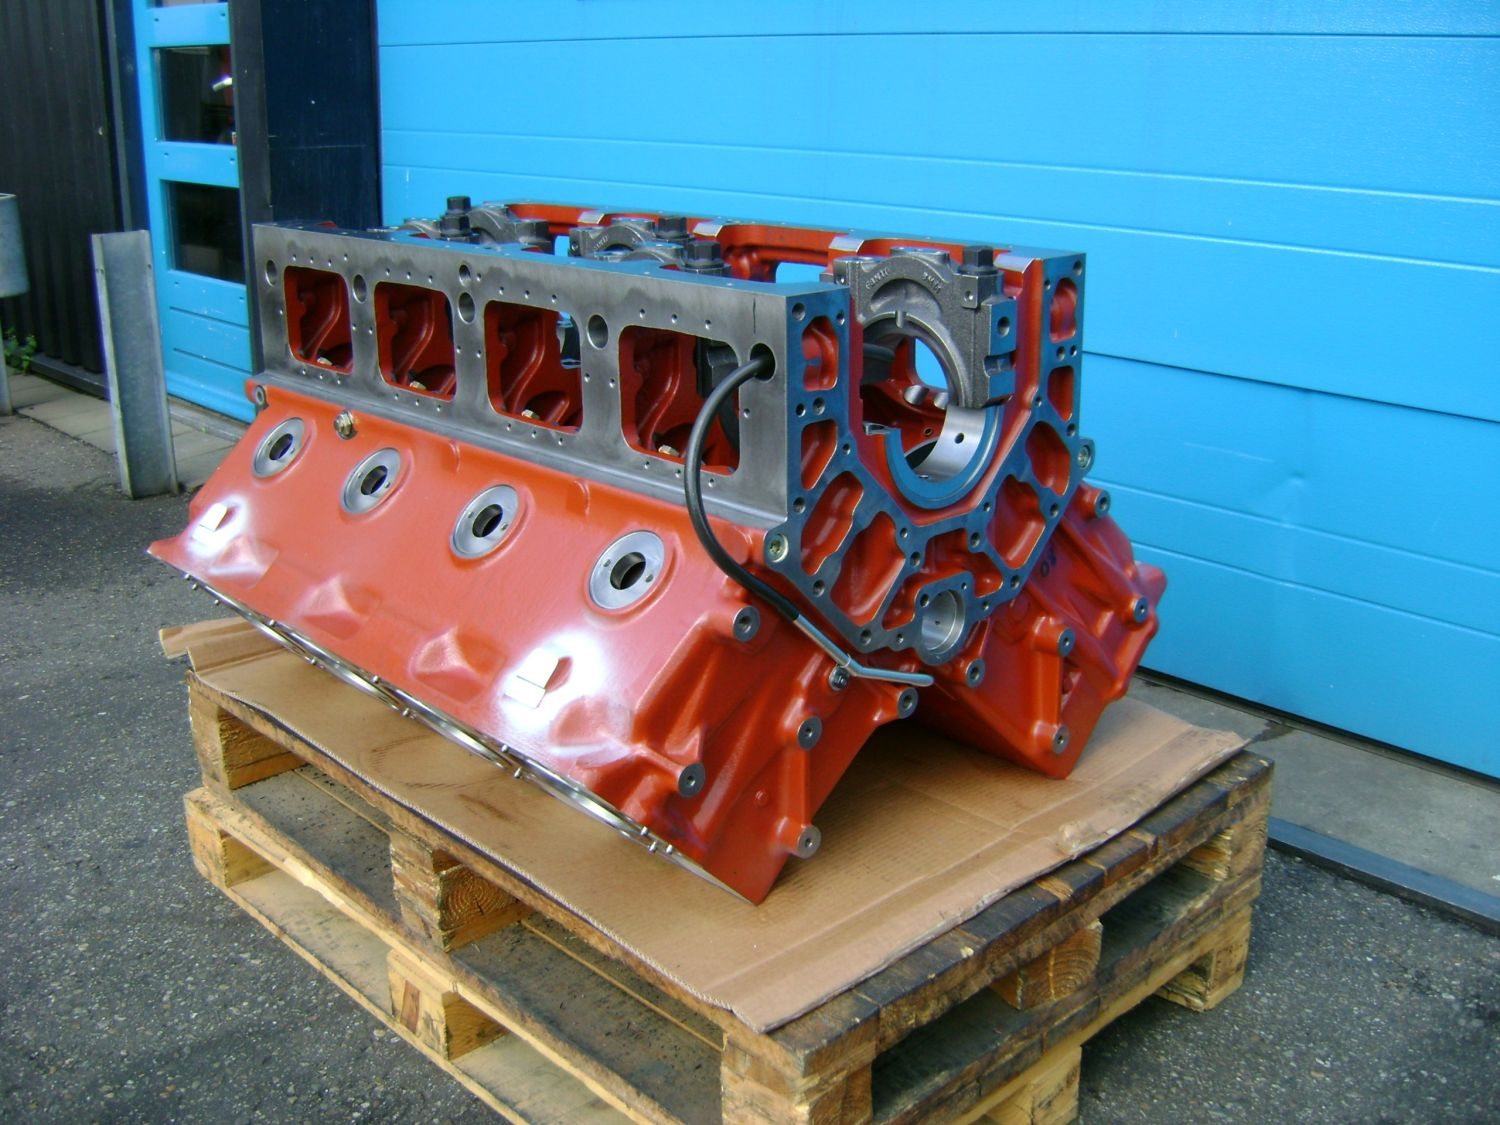 Supply of a brand new engine block for Baudouin engine